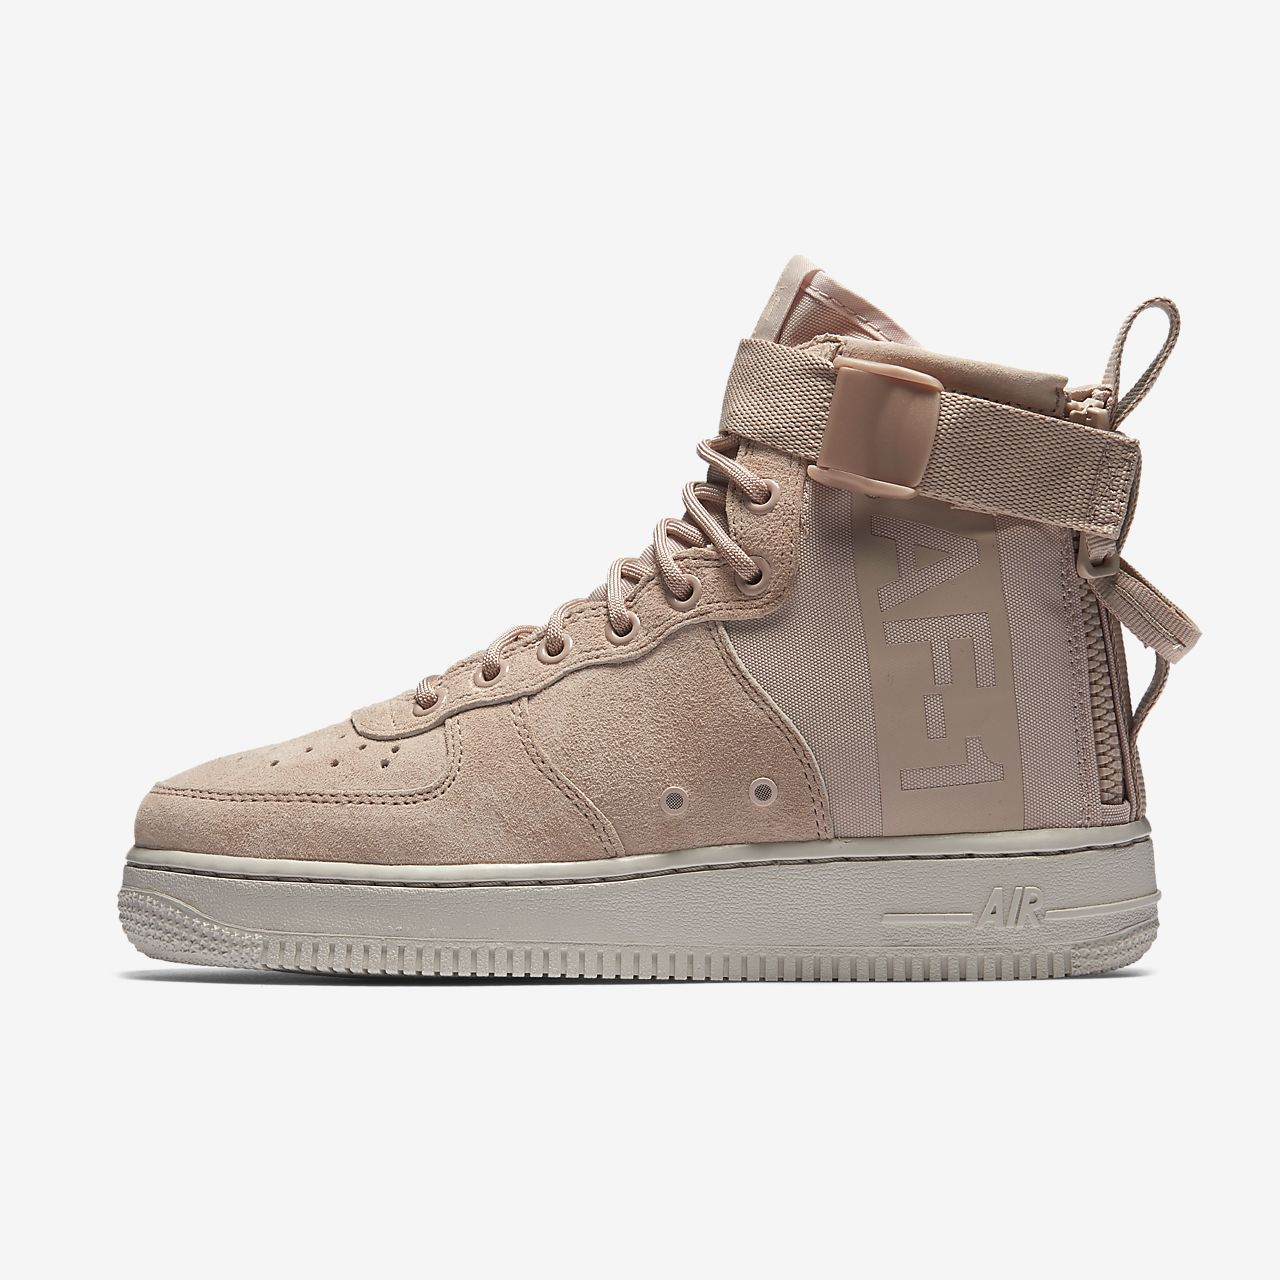 Nike Sf Air Force 1 Mi Schoenen E FEZgYOMSbs